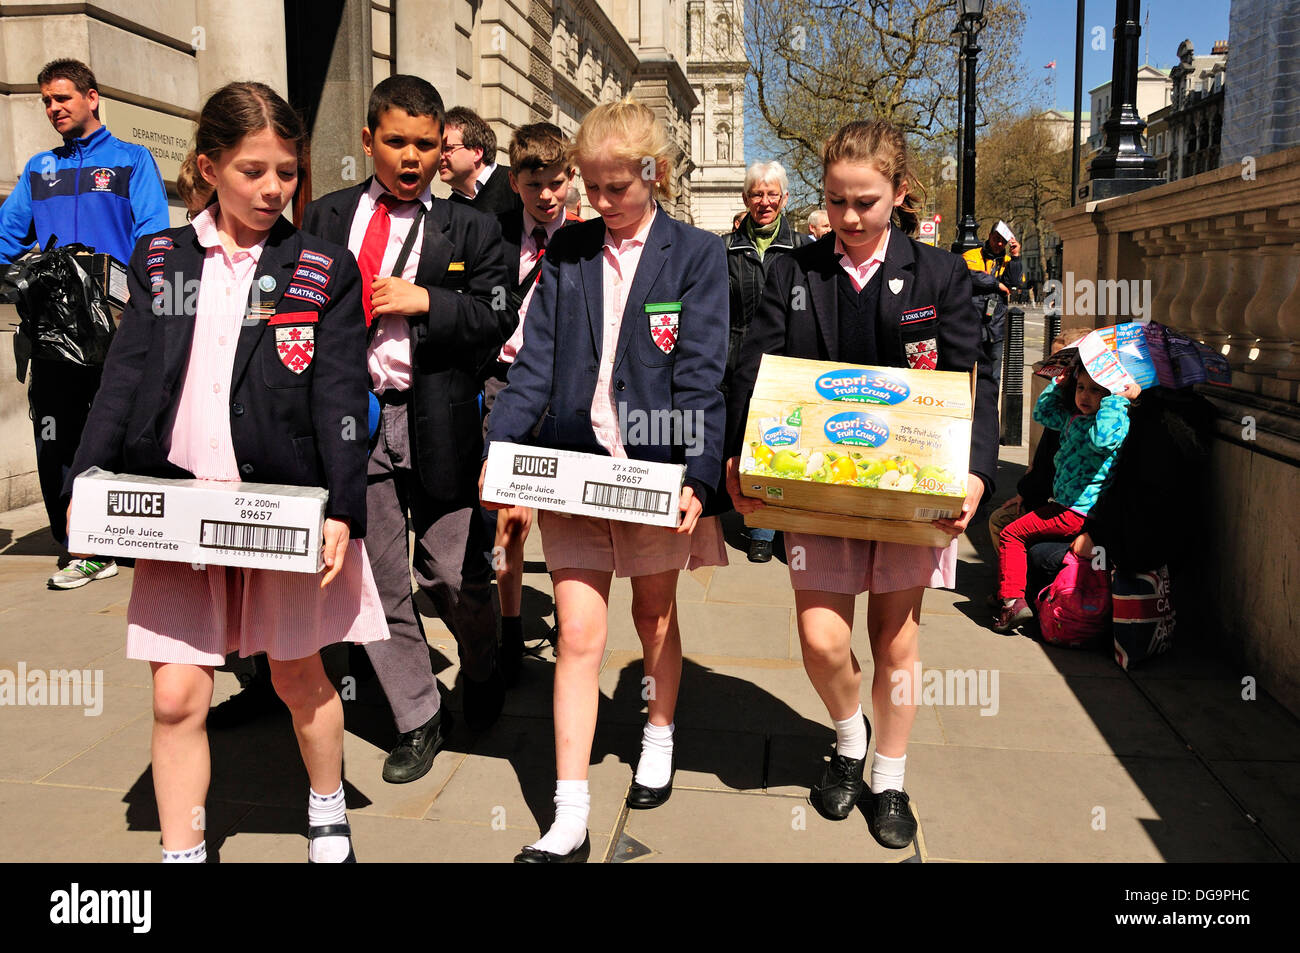 London, England, UK. Schoolchildren walking down Whitehall with boxes of fruit juice (no model releases) - Stock Image